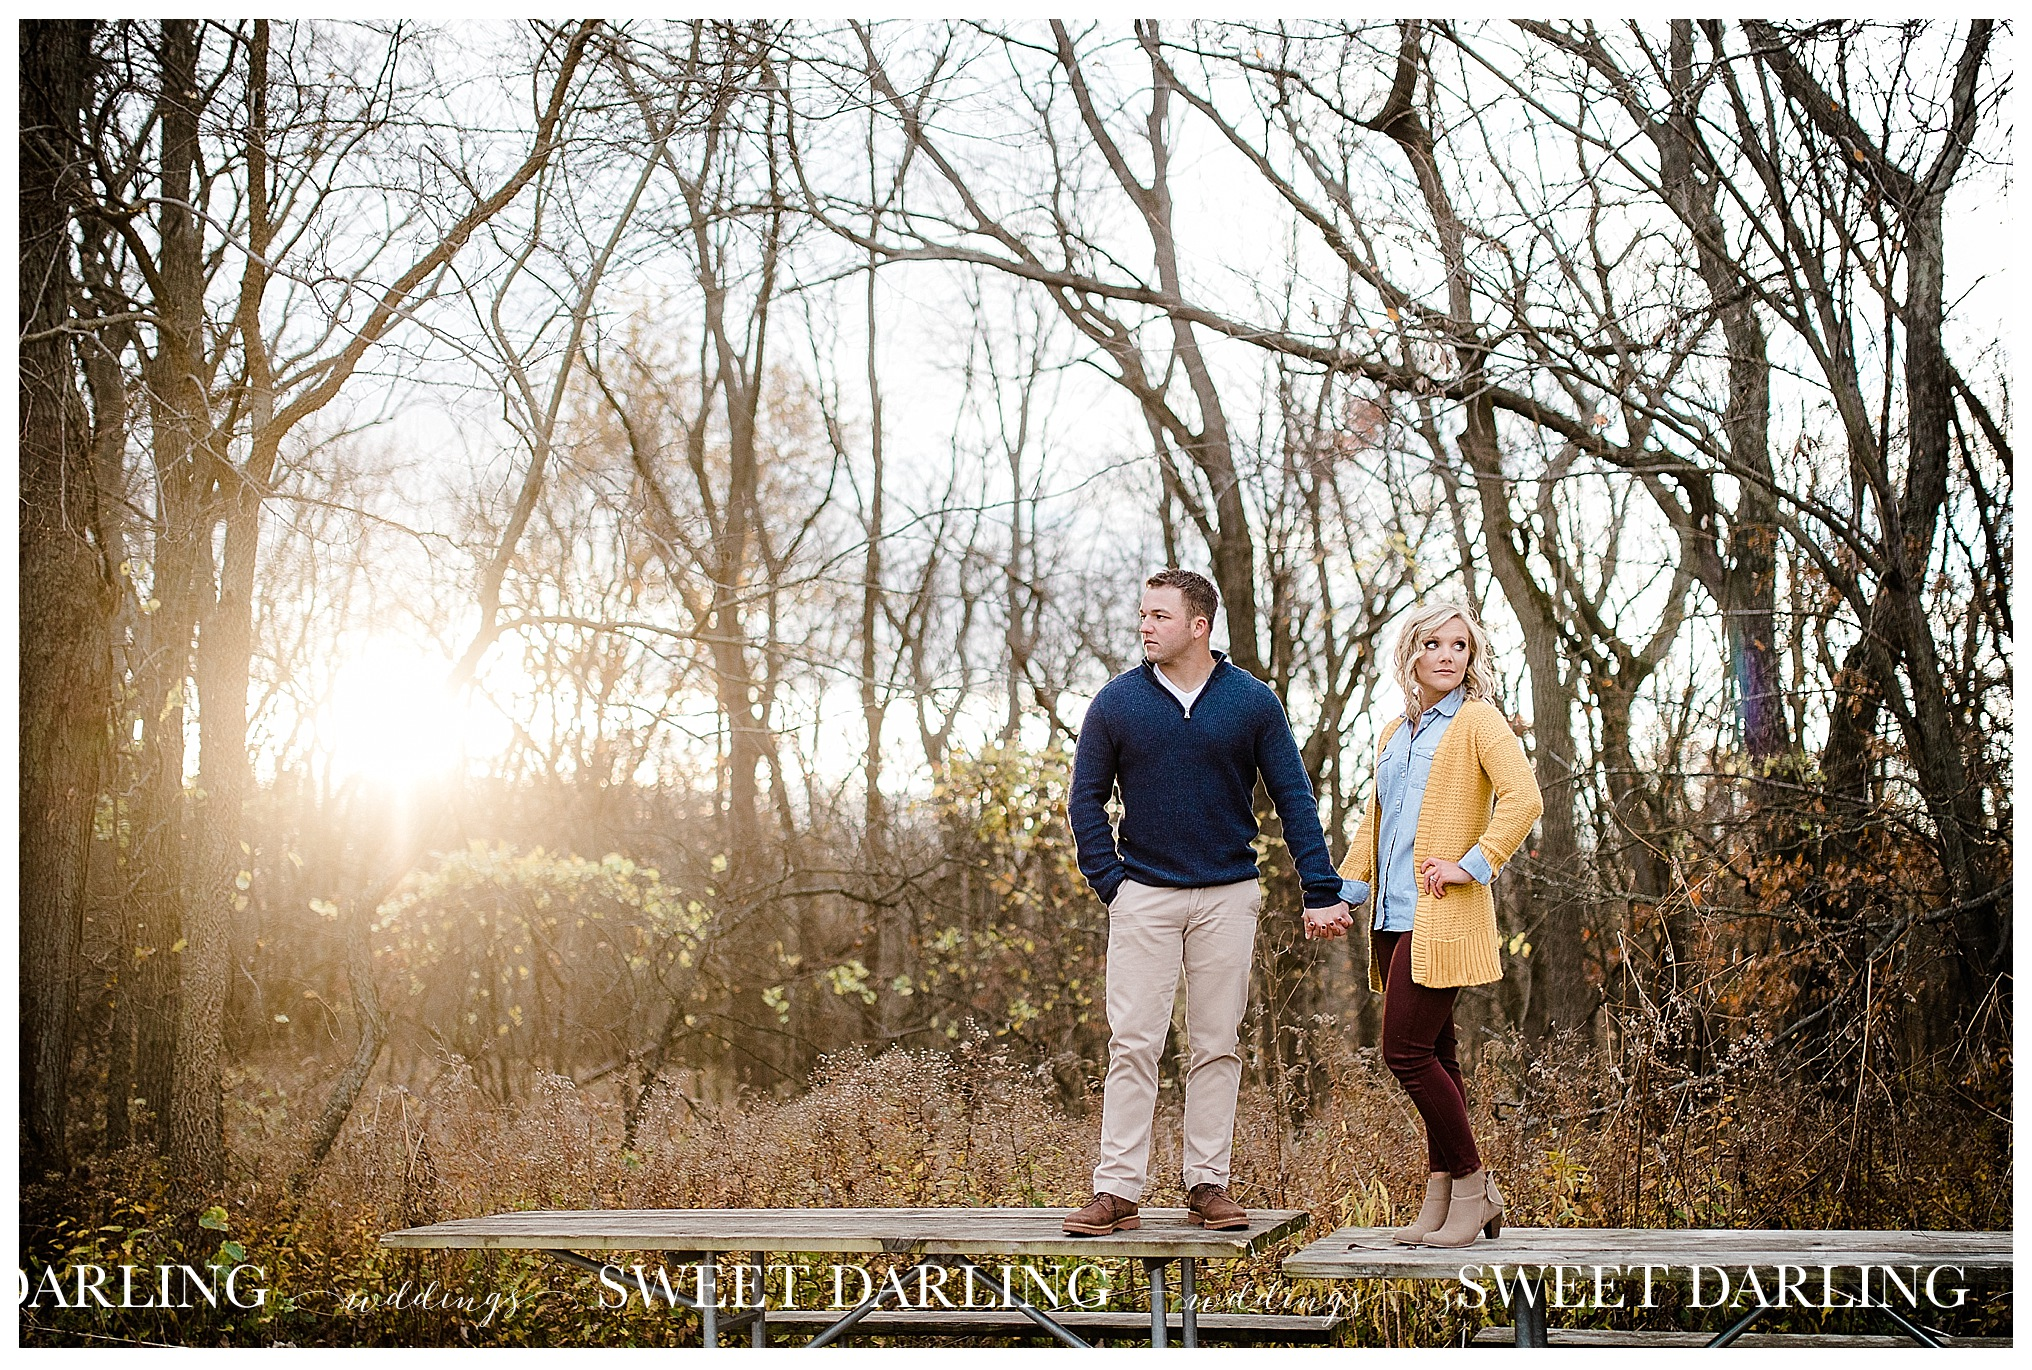 paxton-illinois-sweet-darling-weddings-photography-fall-engagement-session-ring-state-park_1005.jpg